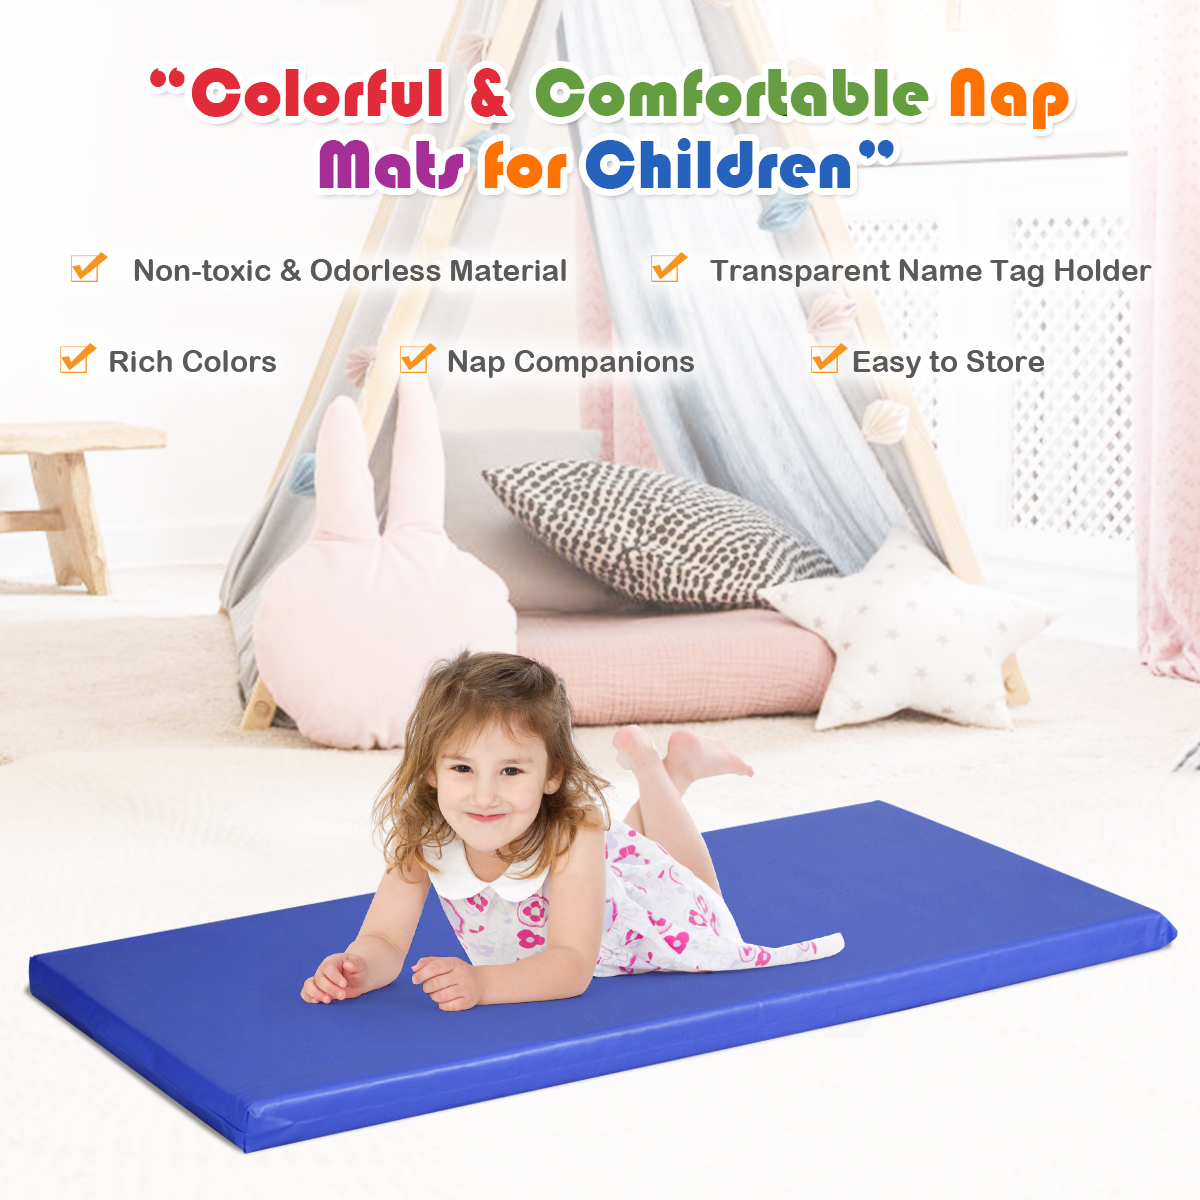 costway 2 inch toddler thick rainbow rest nap mats transparent name tag daycare 5 pack